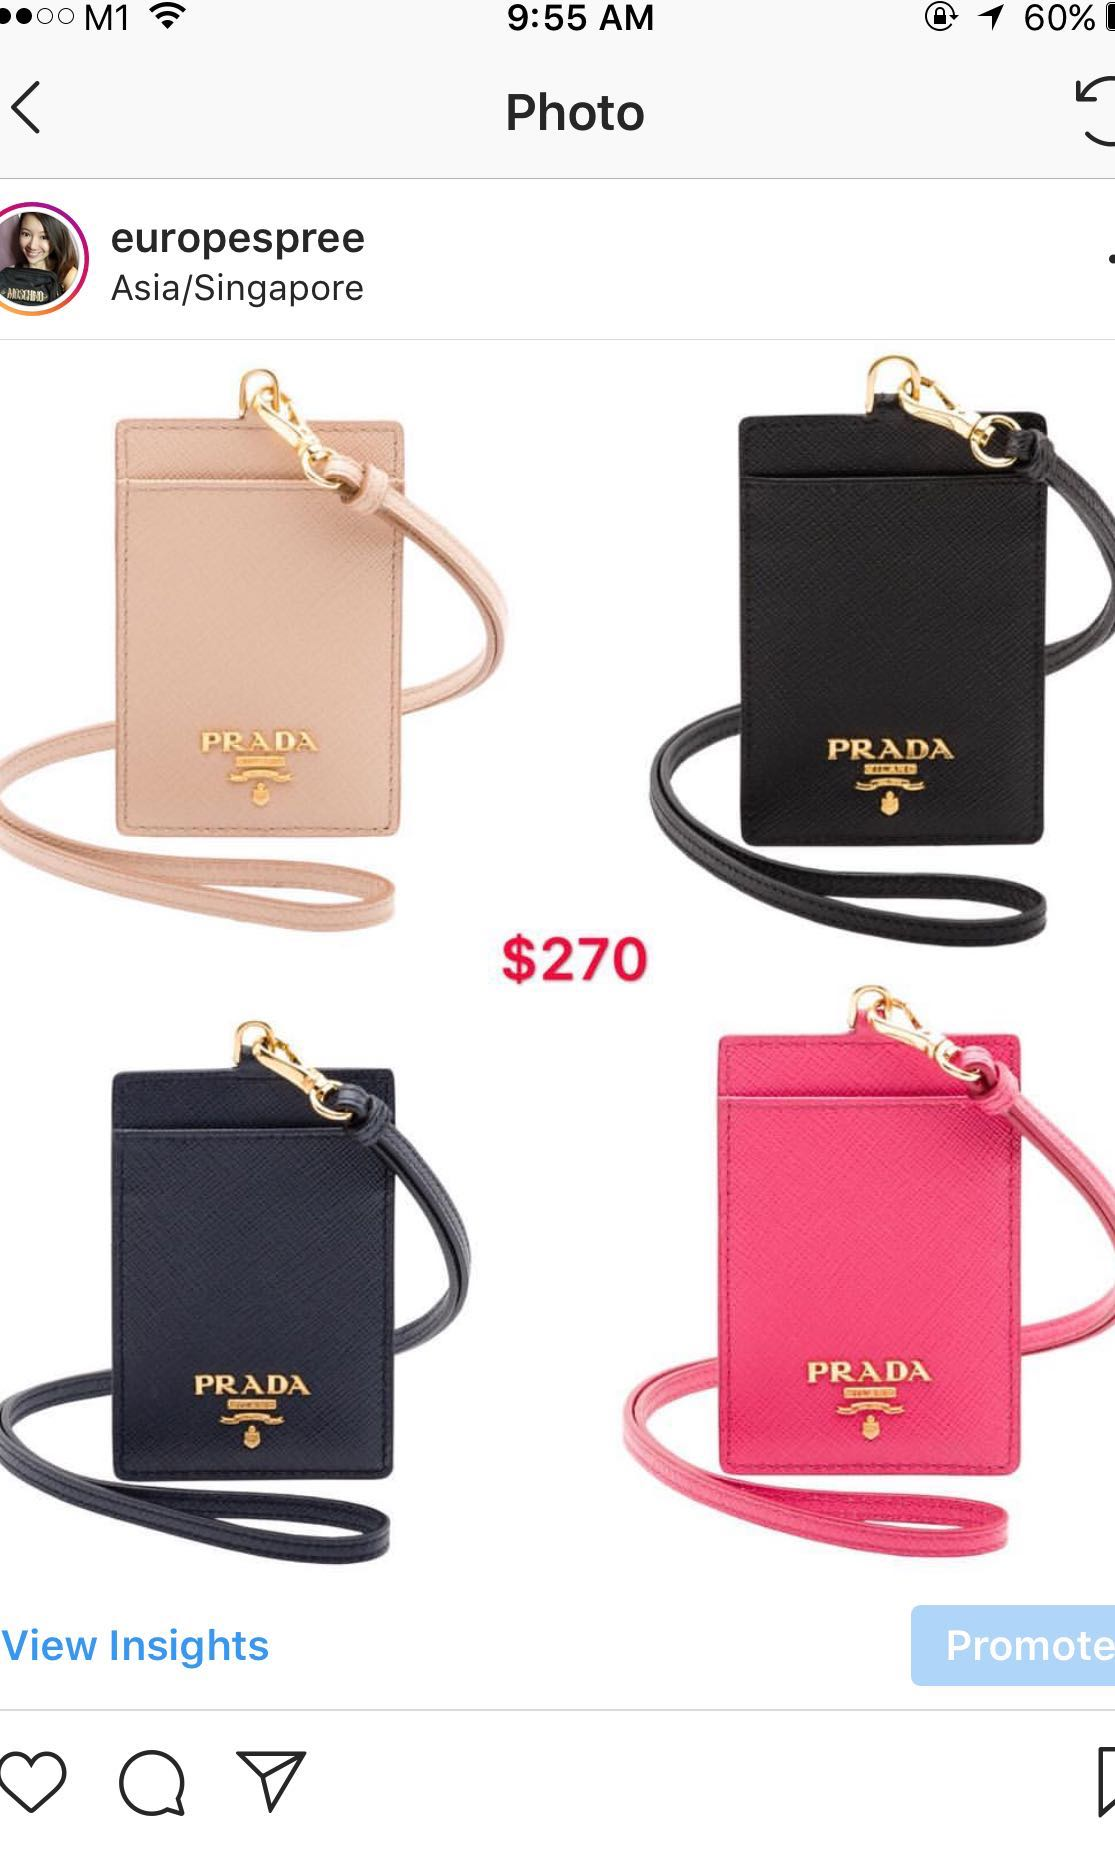 576e43e85d66 purchase saffiano leather crossbody bag prada d7c9a d3ce8; spain prada  lanyard womens fashion bags wallets others on carousell 05fe5 eee70